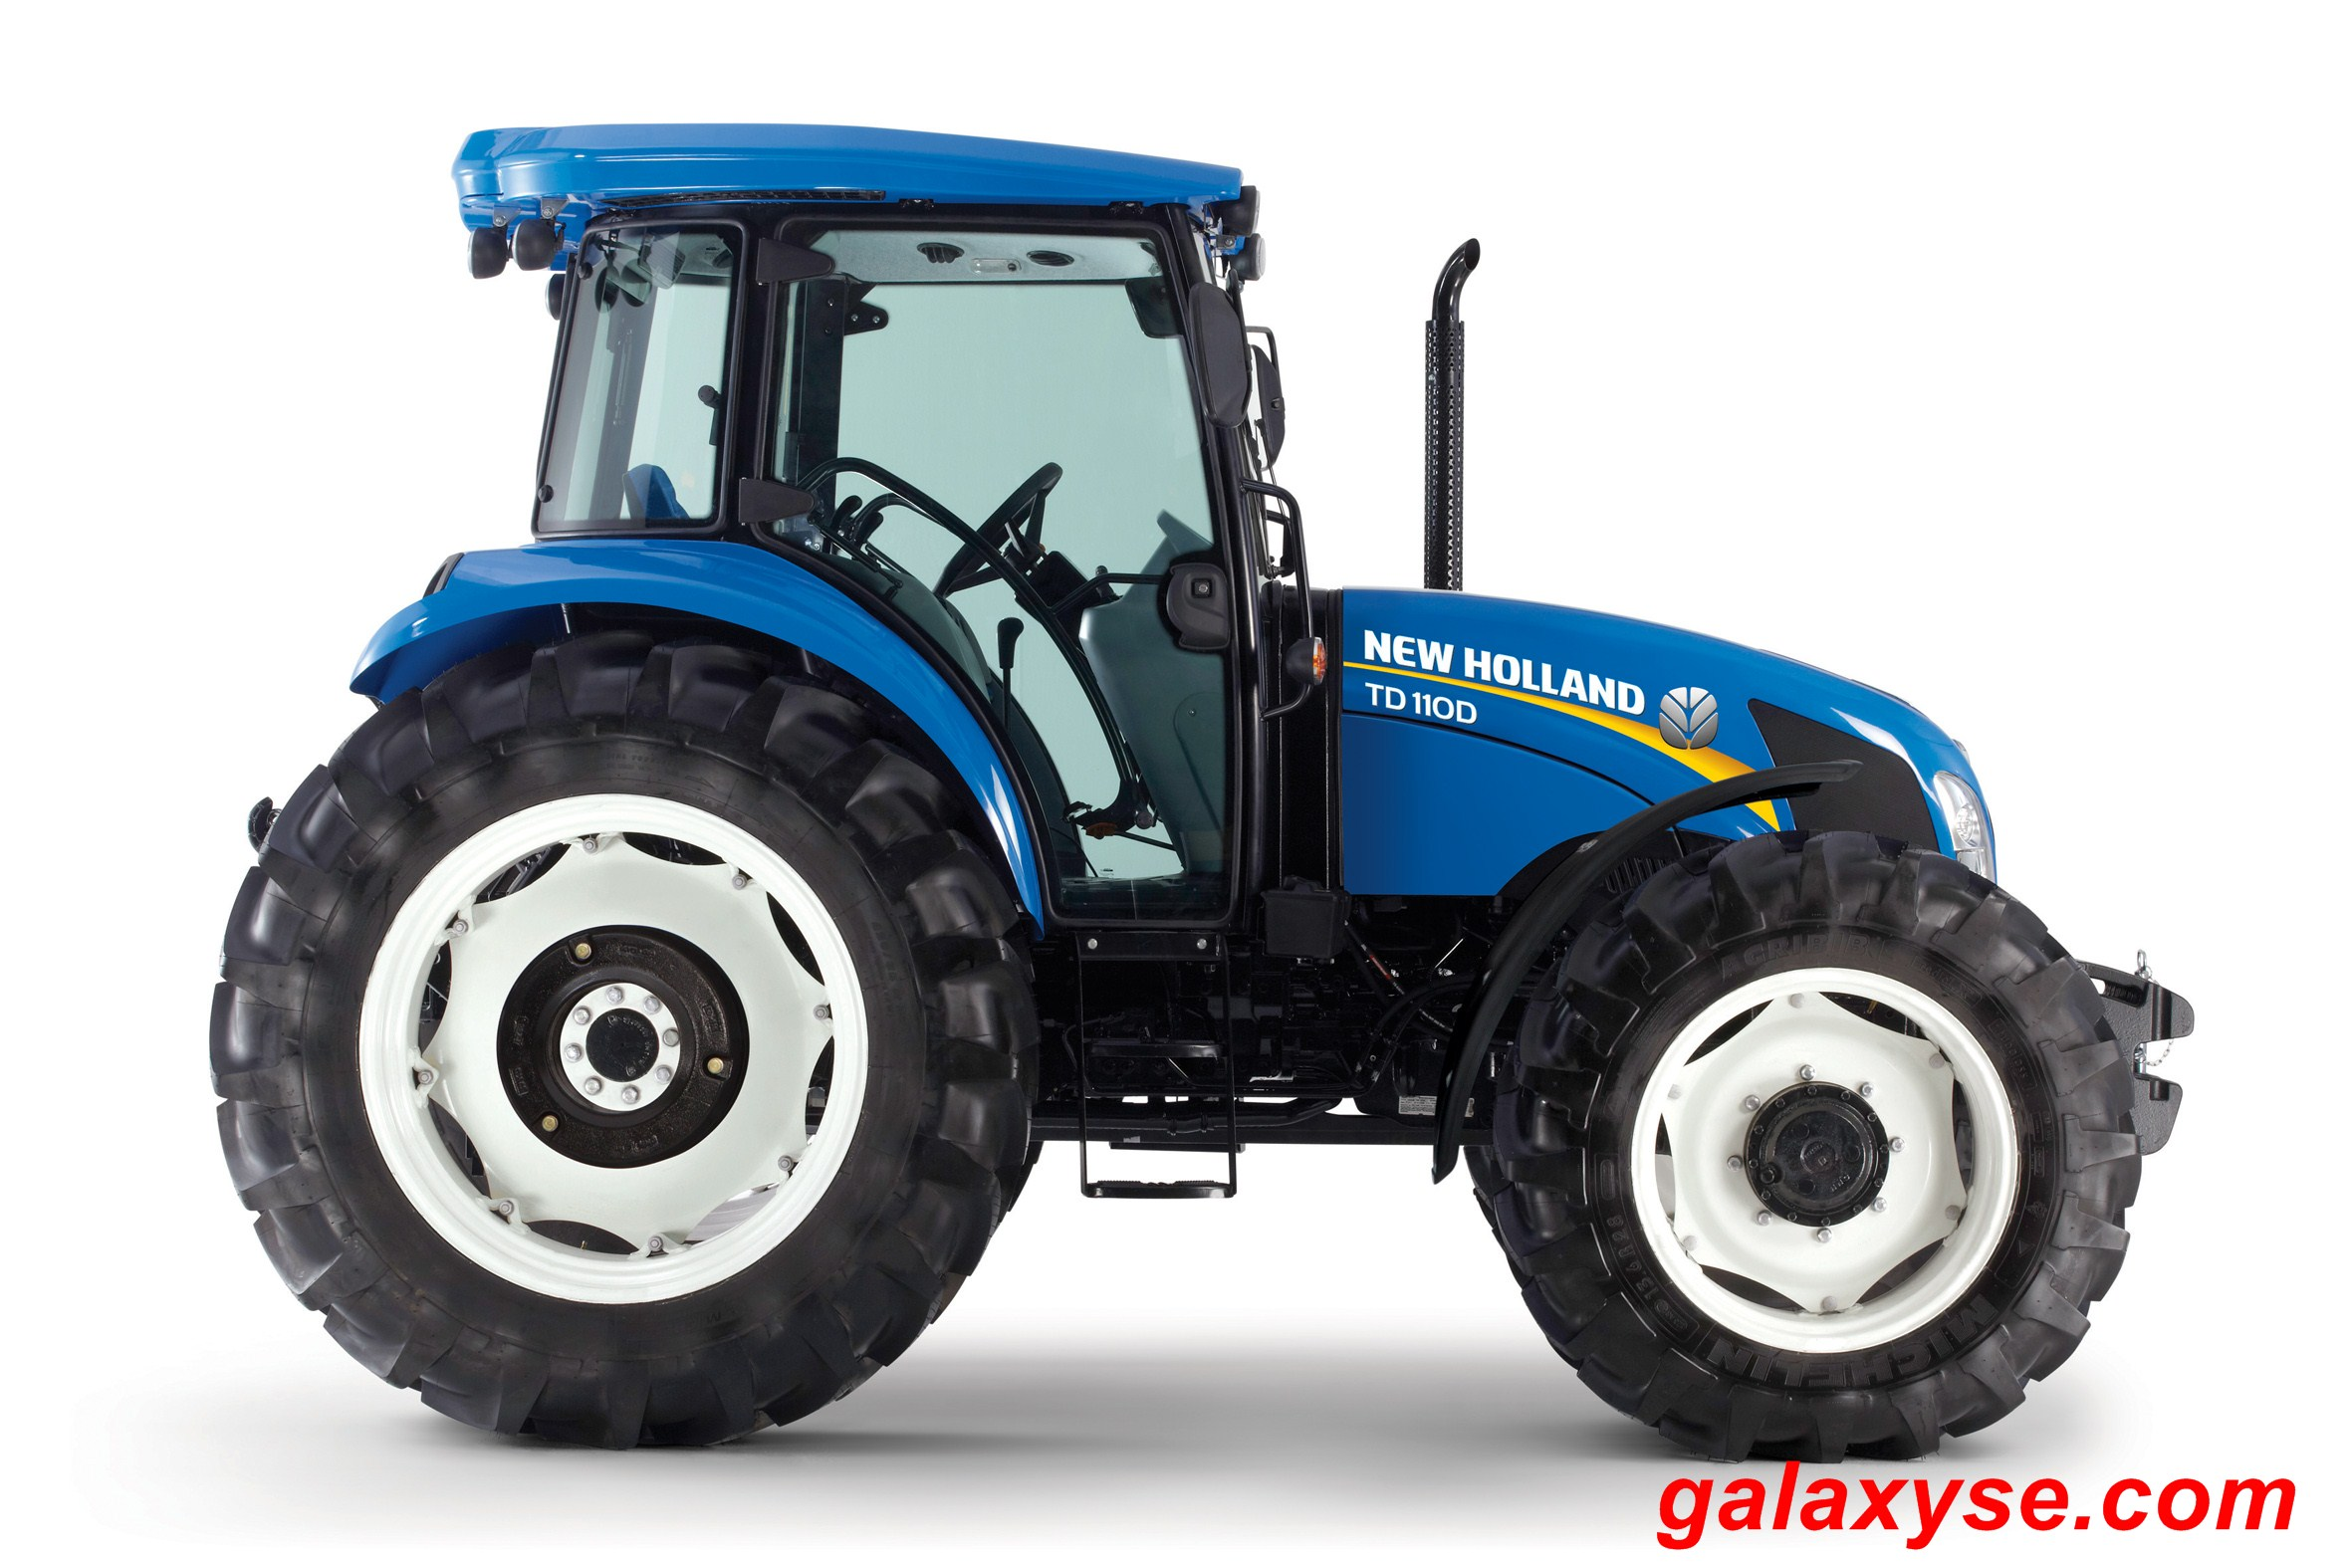 New holland td photo - 3